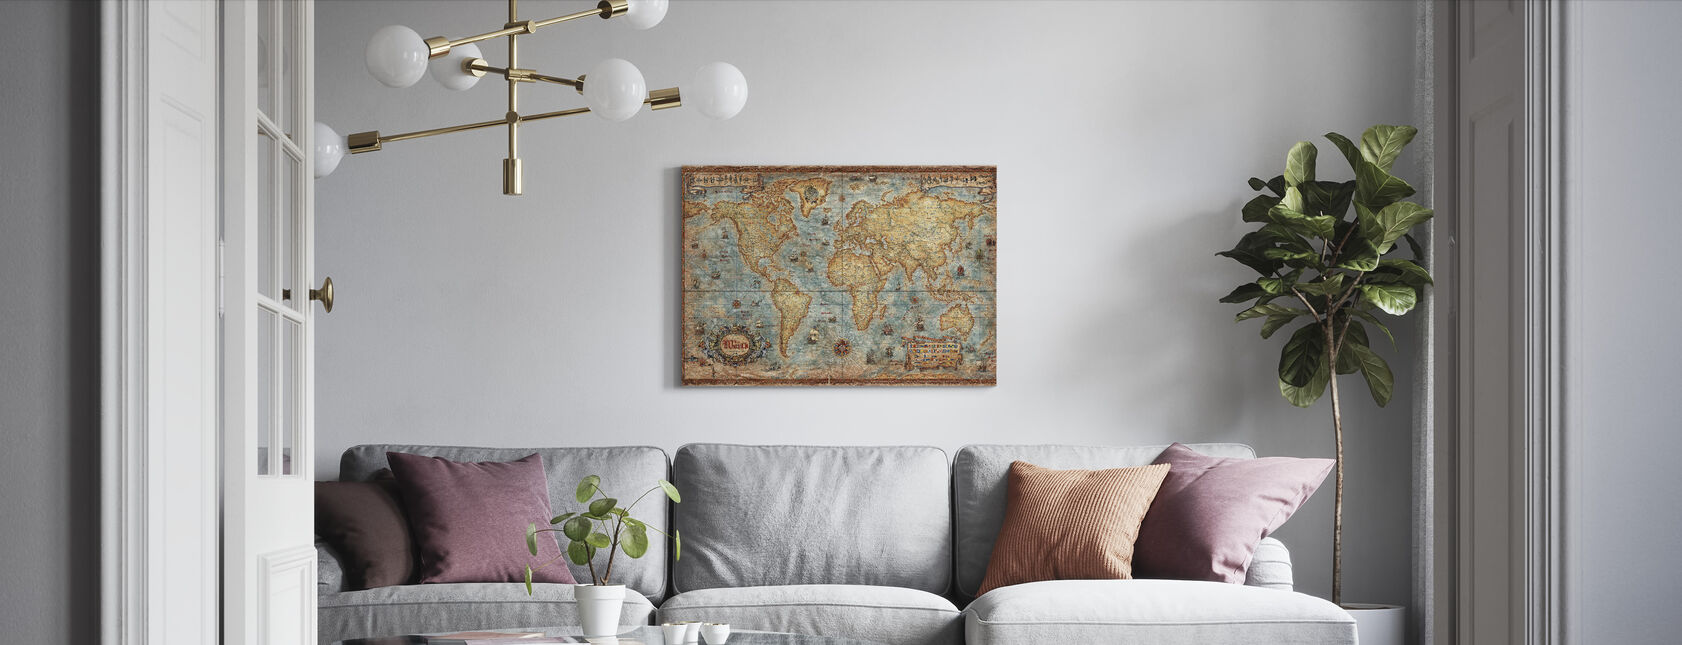 Modern World Antique Map - Canvas print - Living Room